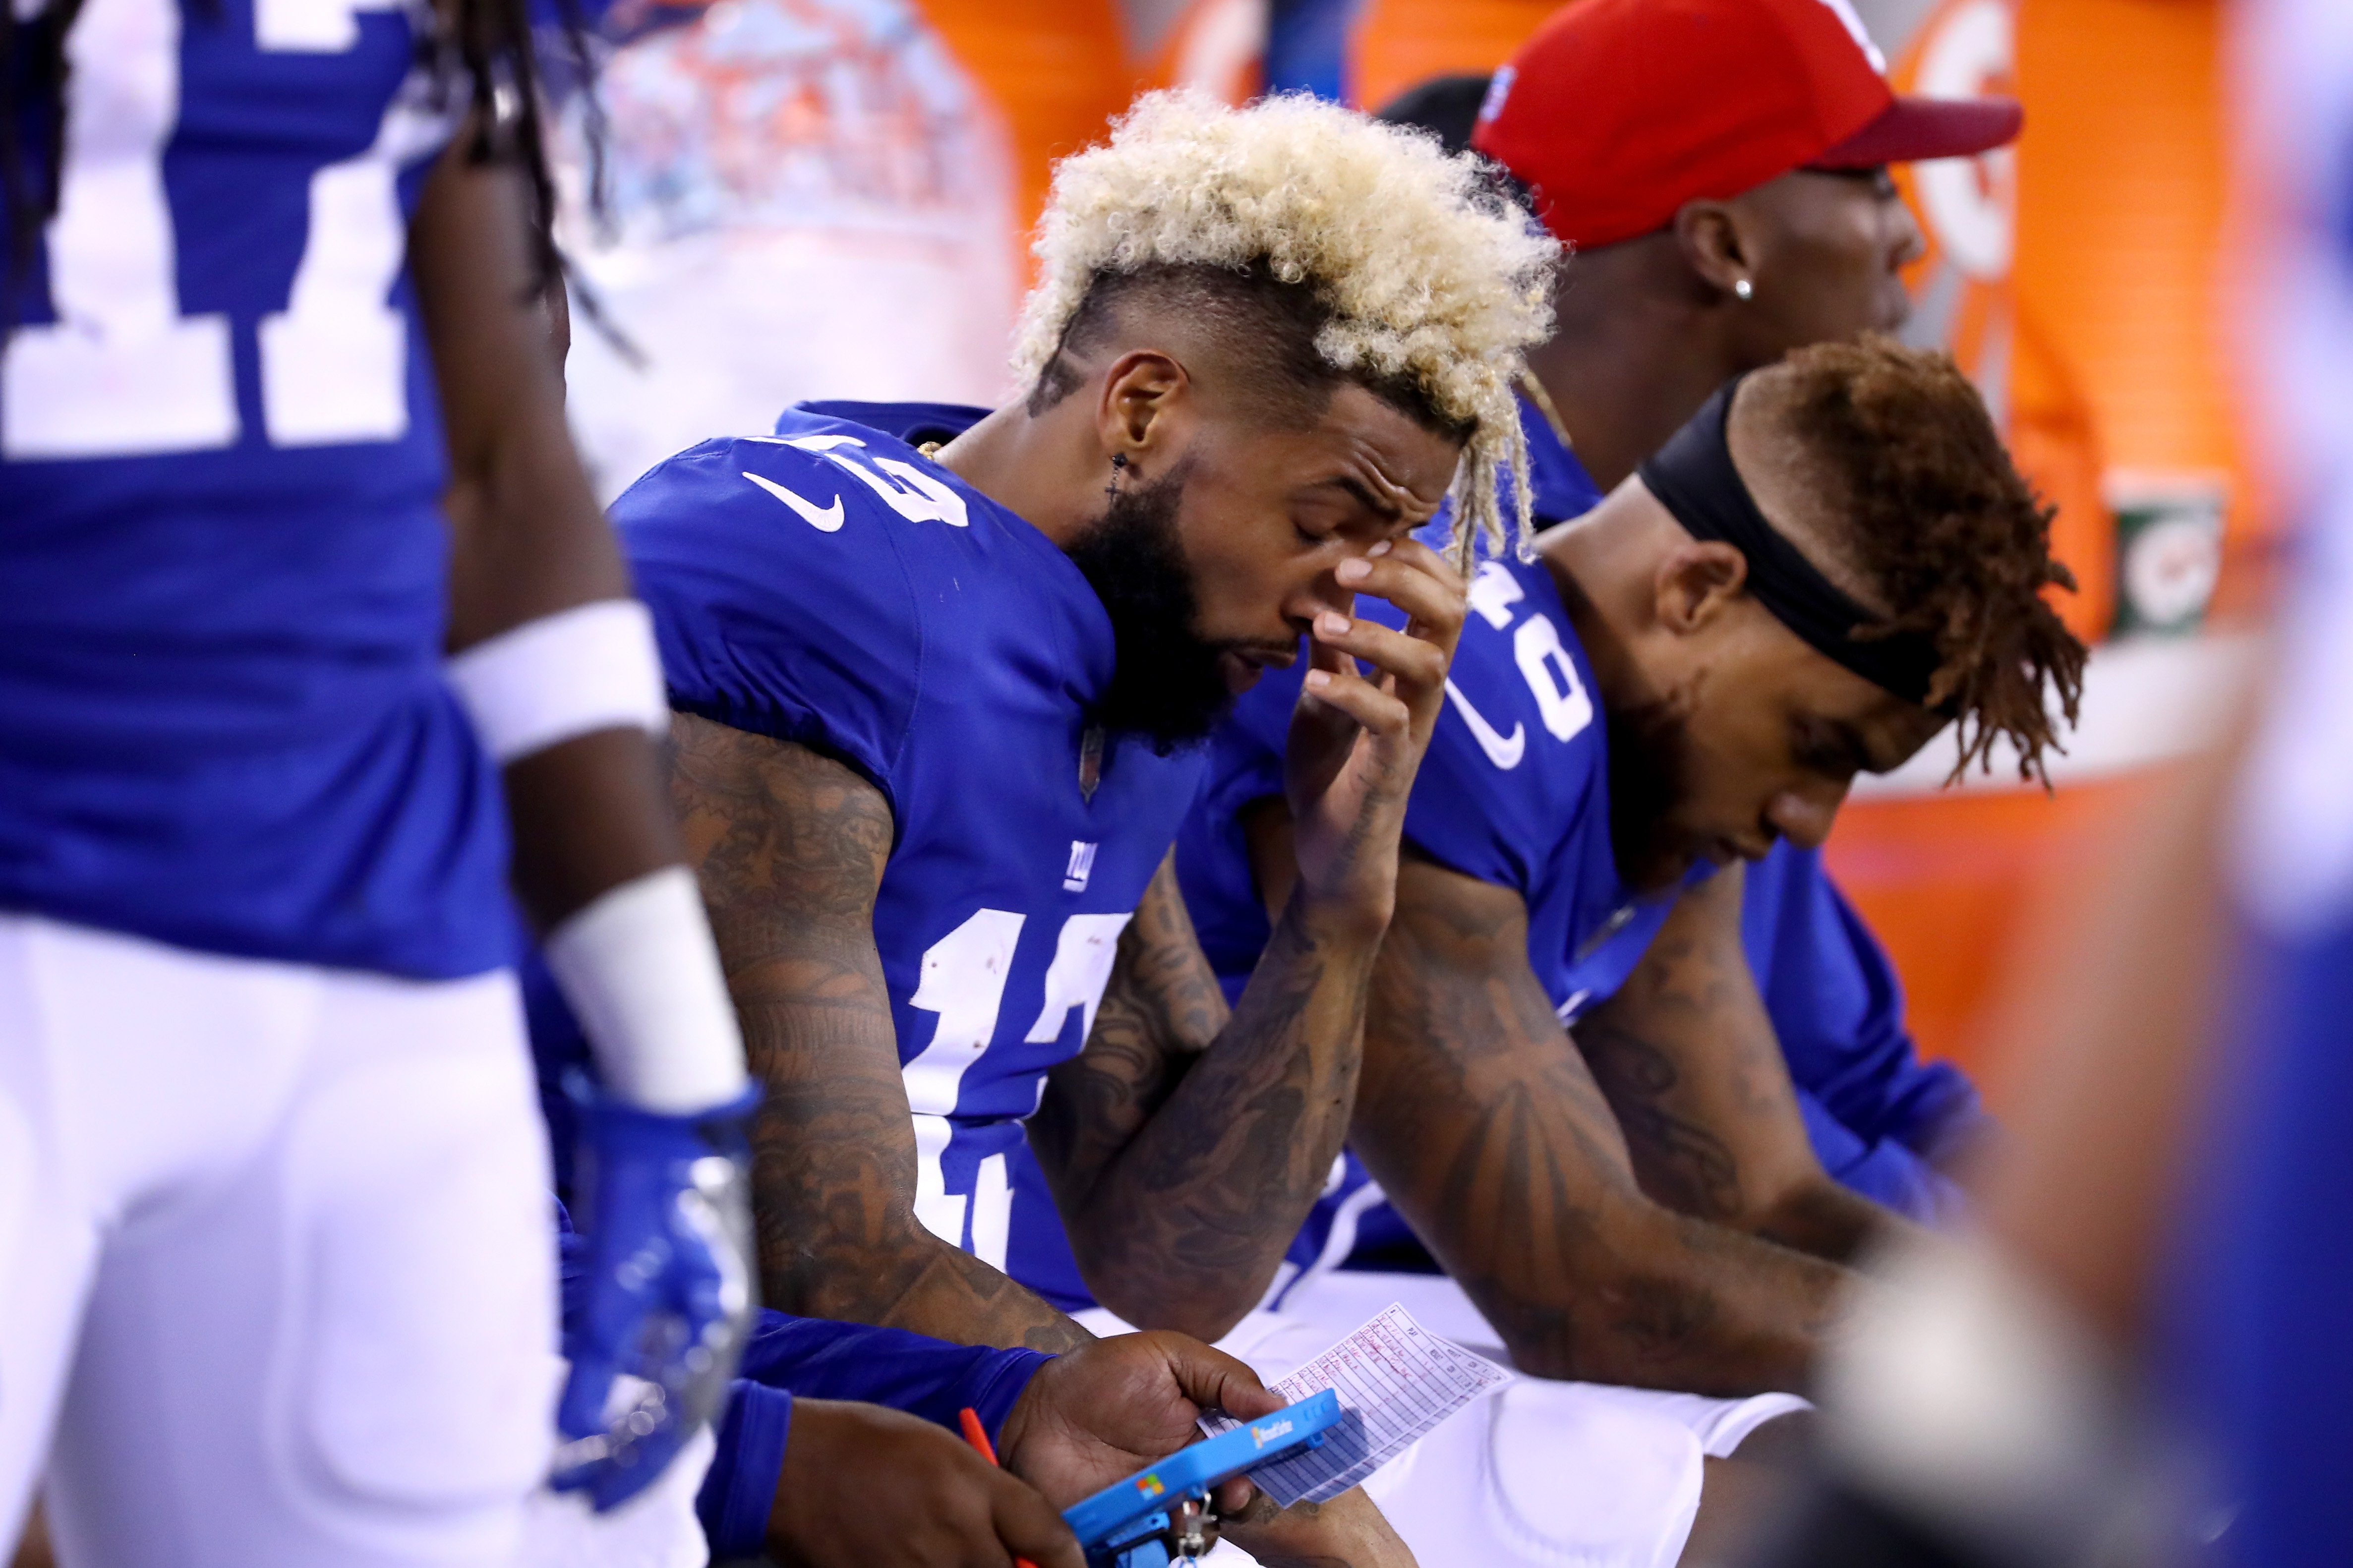 Odell Beckham Jr. #13 of the New York Giants reacts on the sideline in the fourth quarter against the Detroit Lions during their game at MetLife Stadium on September 18, 2017 in East Rutherford, New Jersey.